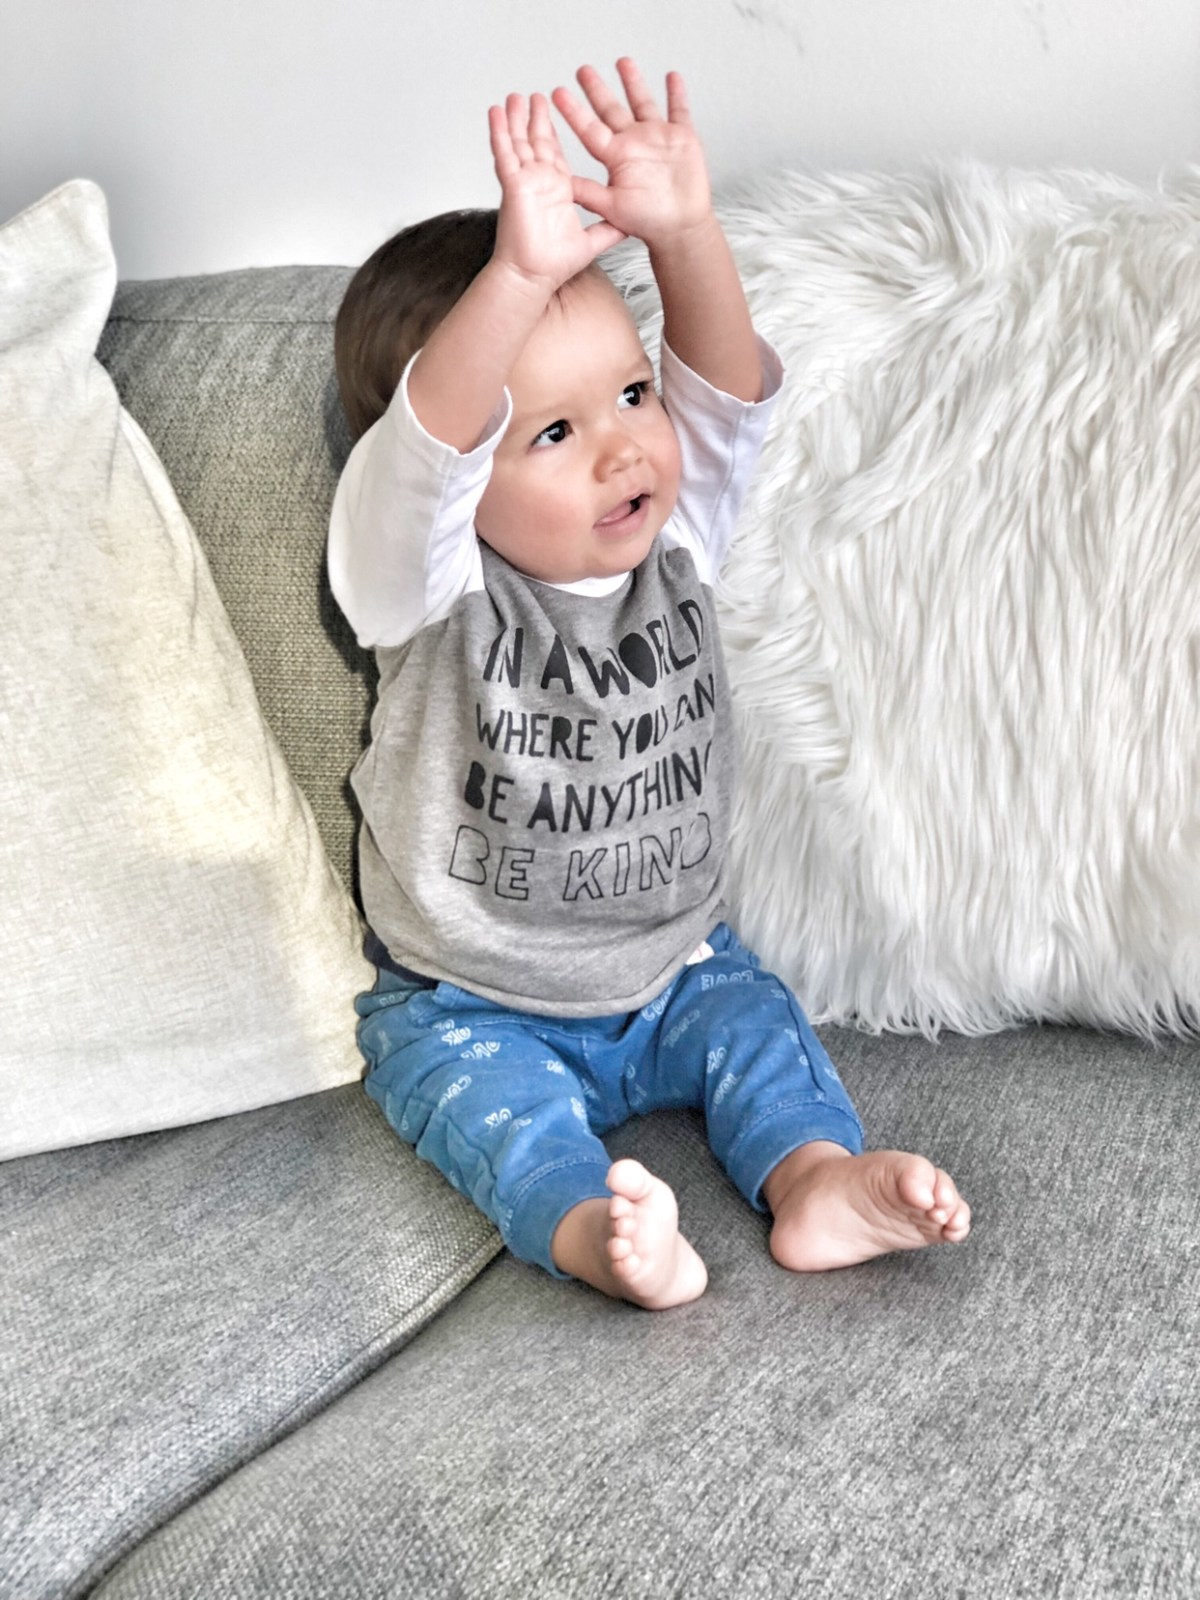 when does baby become a toddler?